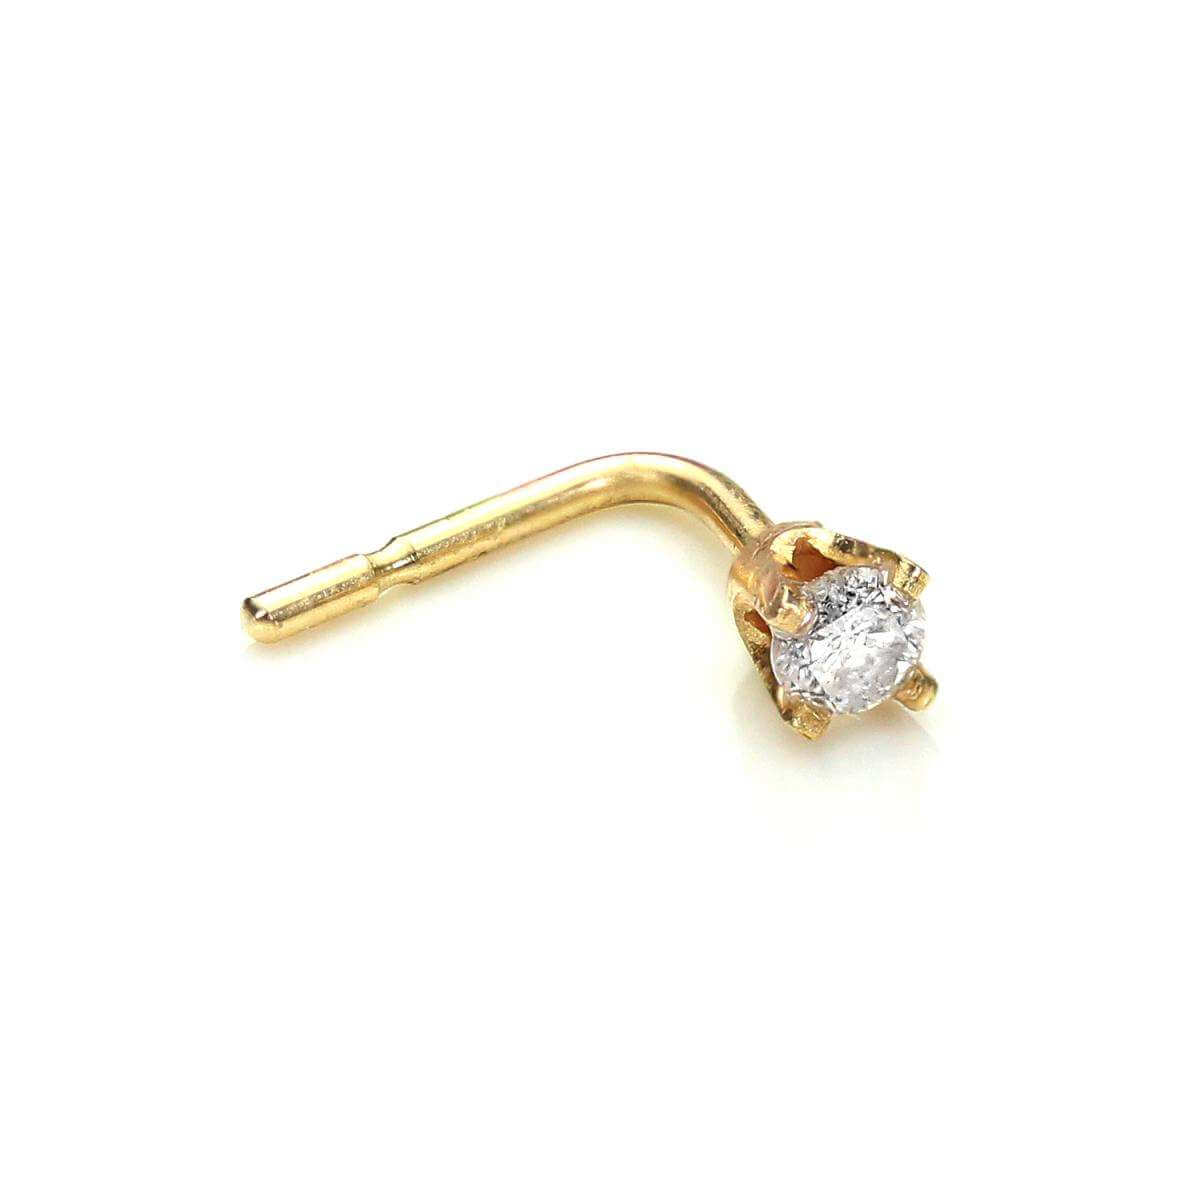 p diamond kite wh stud earrings gold solid shaped